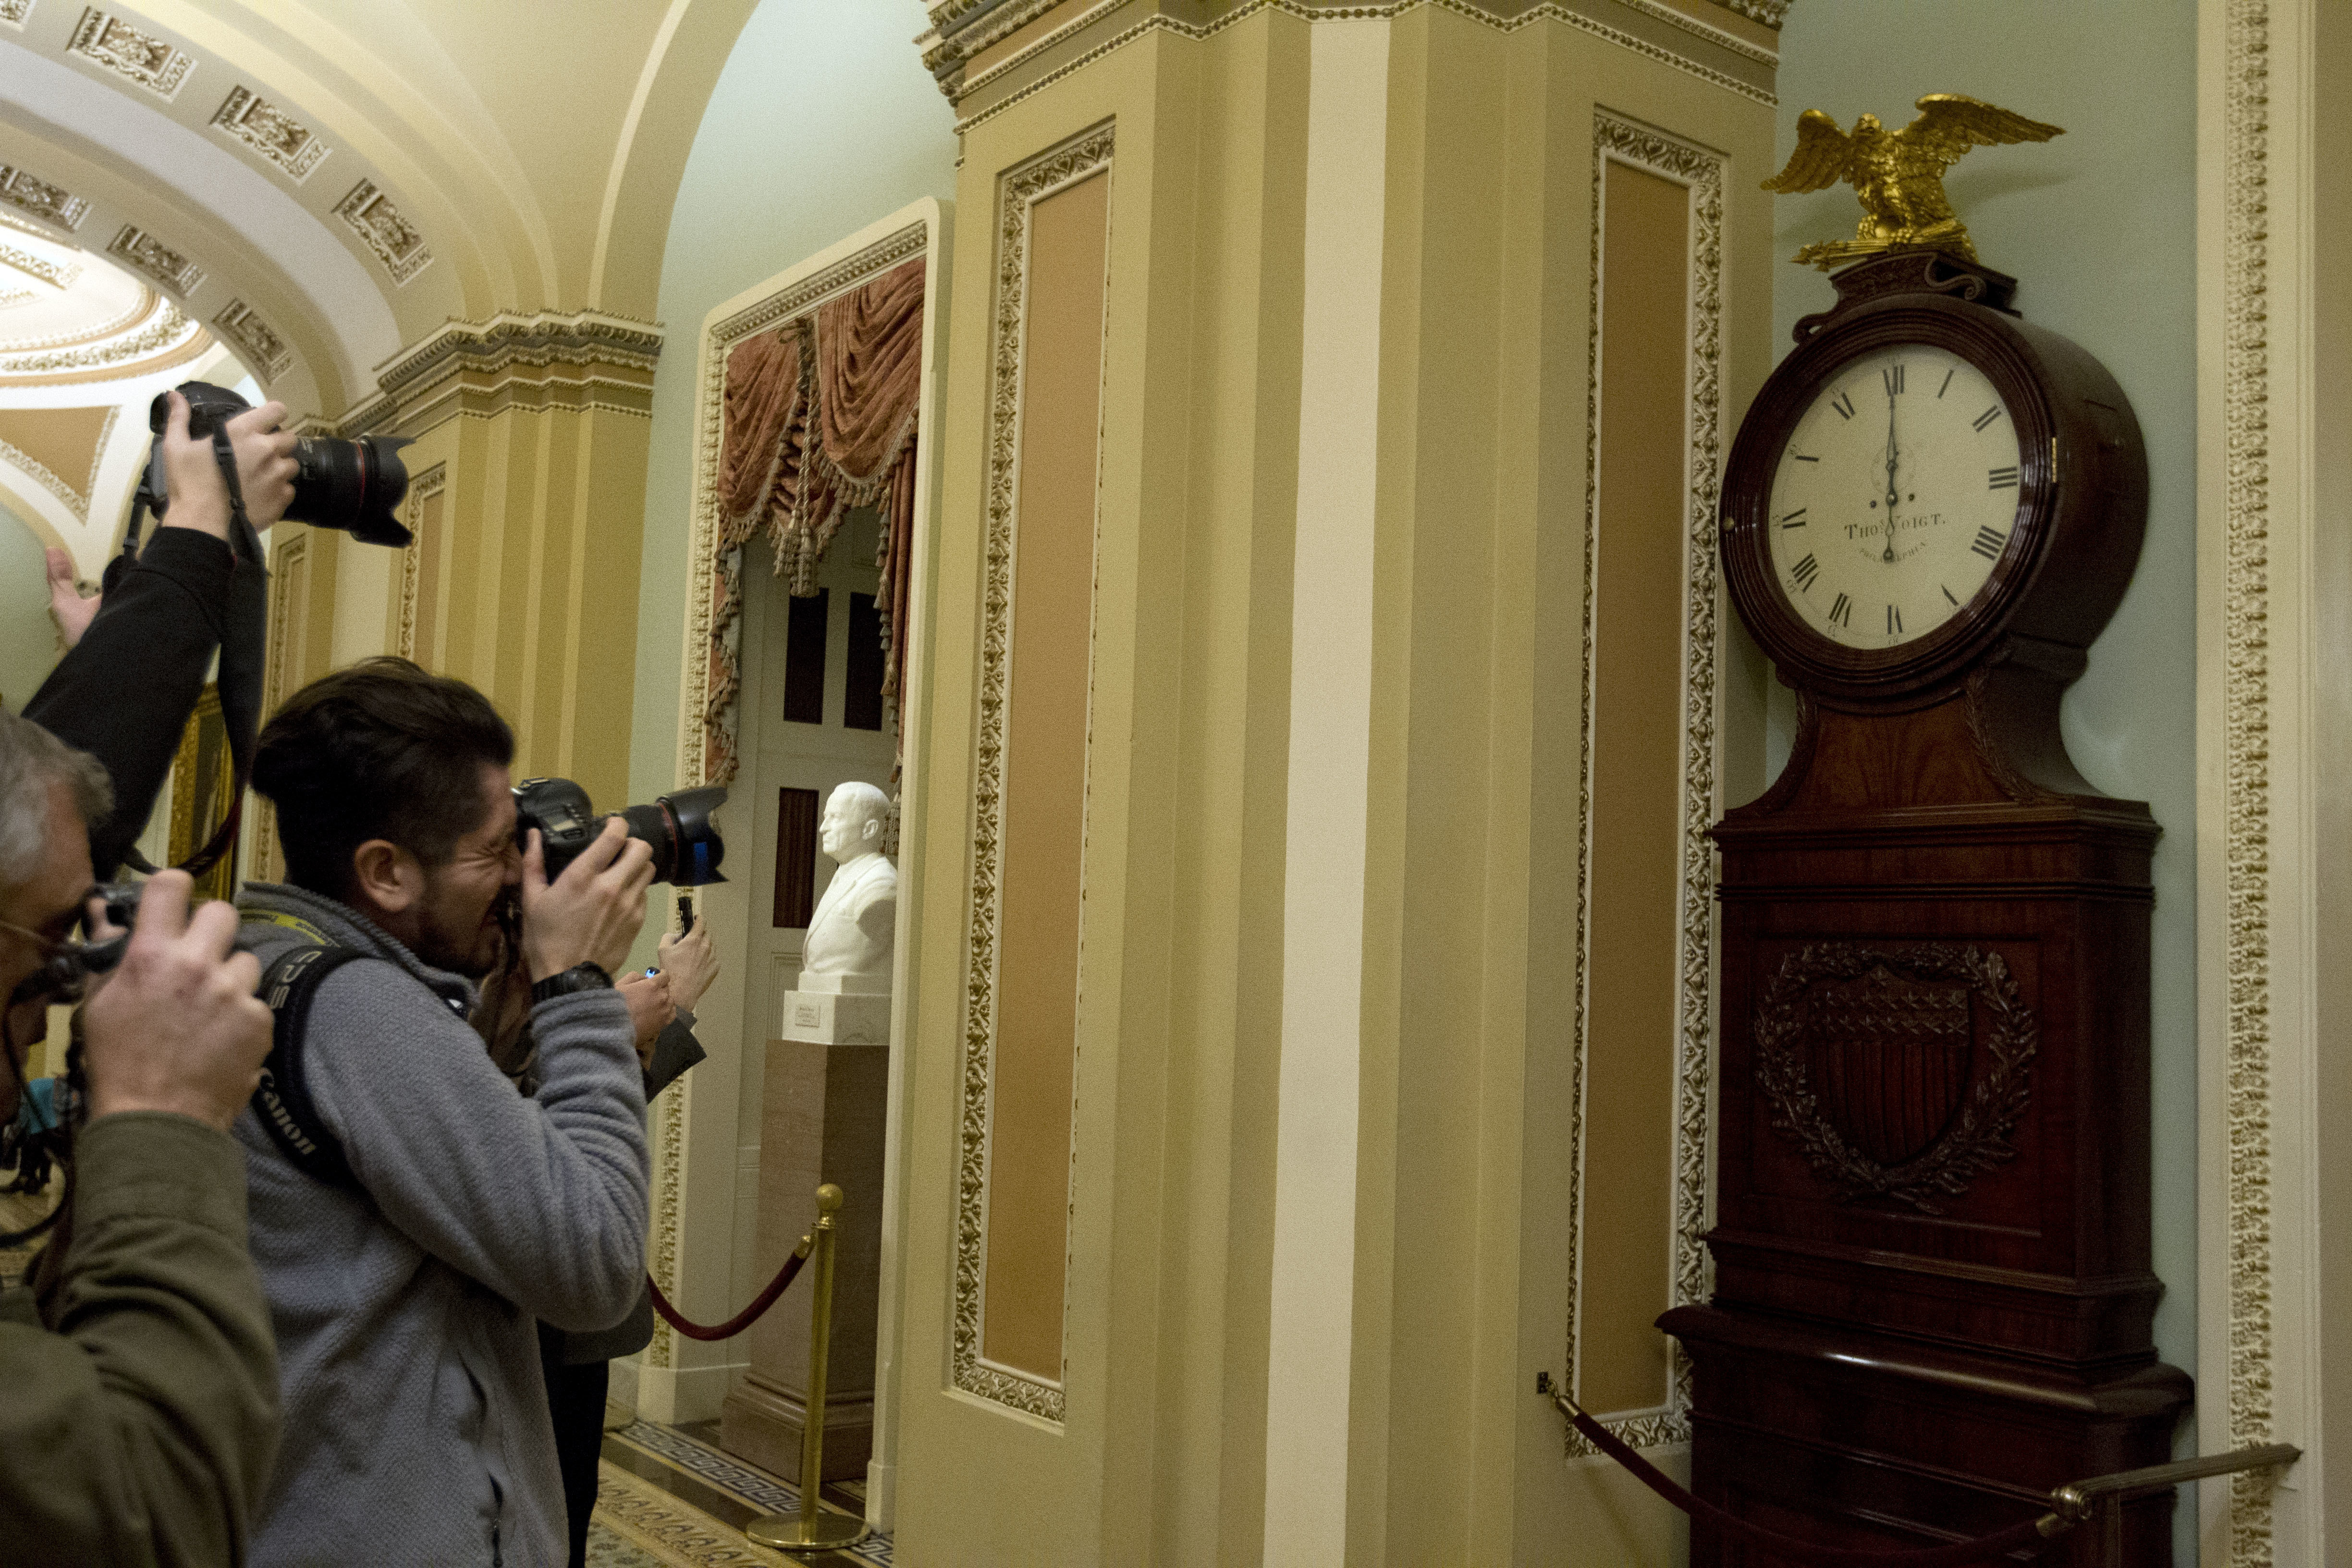 Photographers take a picture of the Ohio Clock outside the Senate chamber shortly after midnight on Jan. 20, 2018 -- the start of the three-day government shutdown. Lawmakers could face a similar spending impasse next week. (Jose Luis Magana/AP)